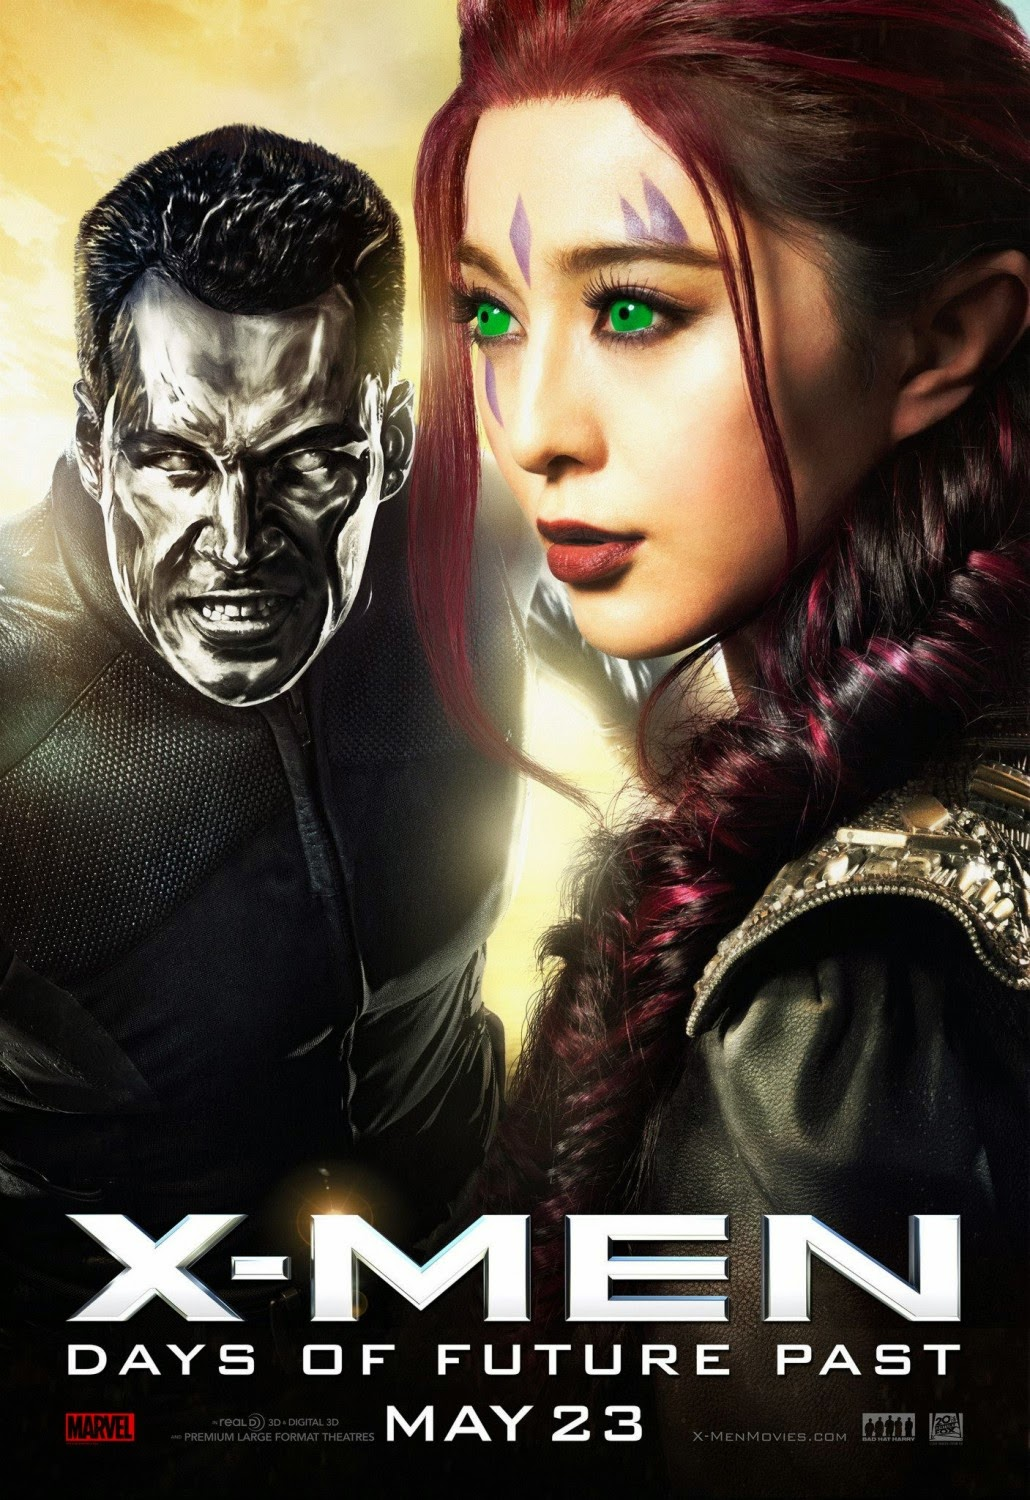 X-Men Days of Future Past Character Movie Poster Set - Daniel Cudmore as Colossus & Bingbing Fan as Blink